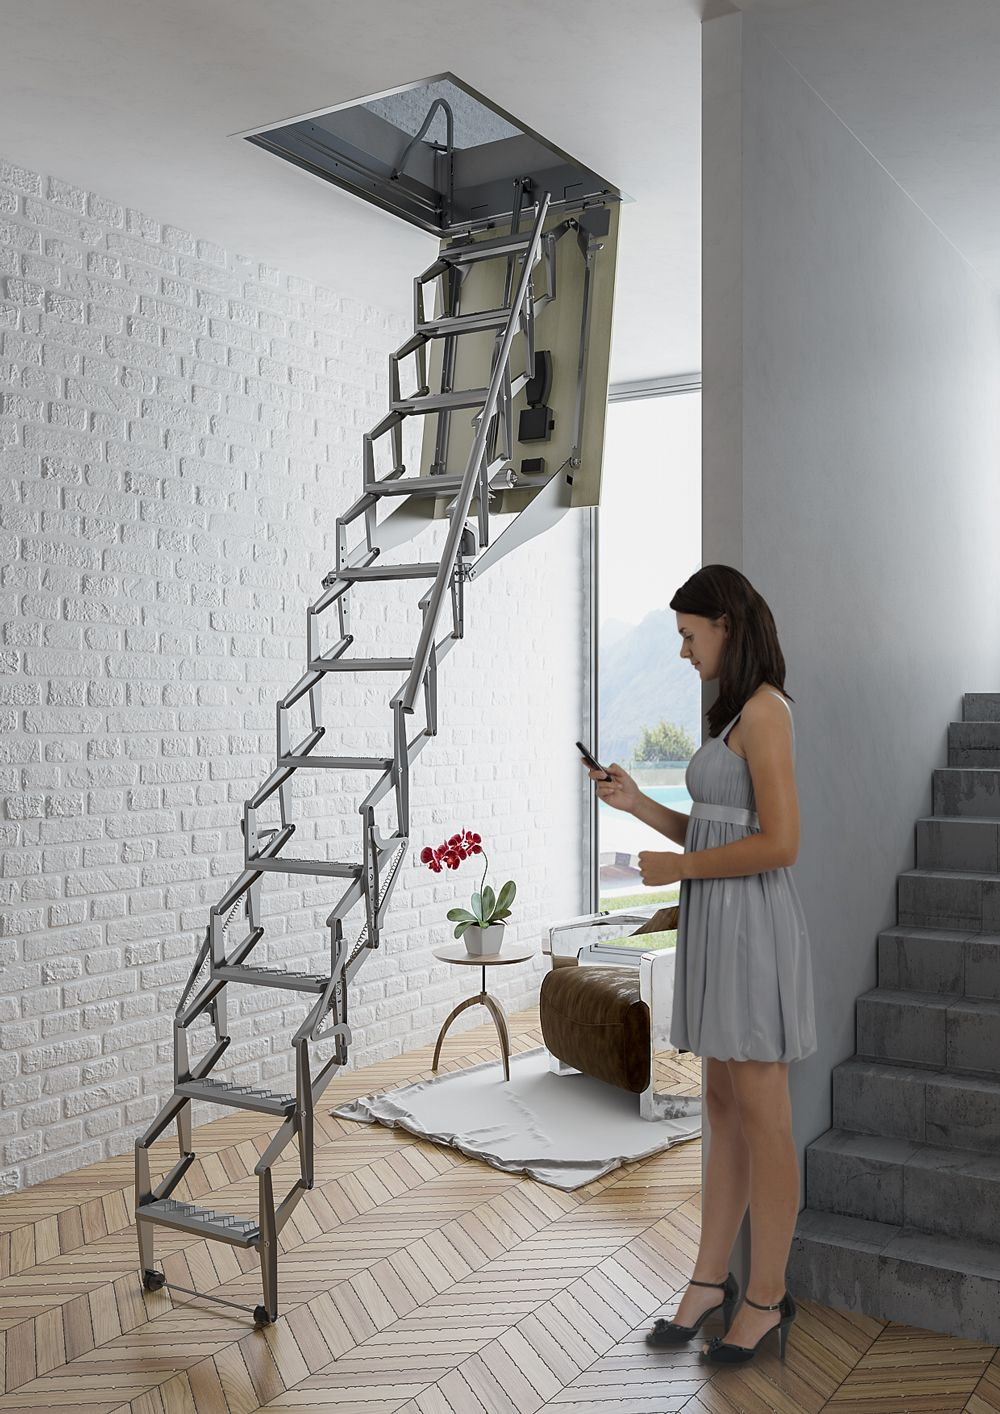 Escalera plegable y escamoteable autom tica para techo for Escaleras altas plegables